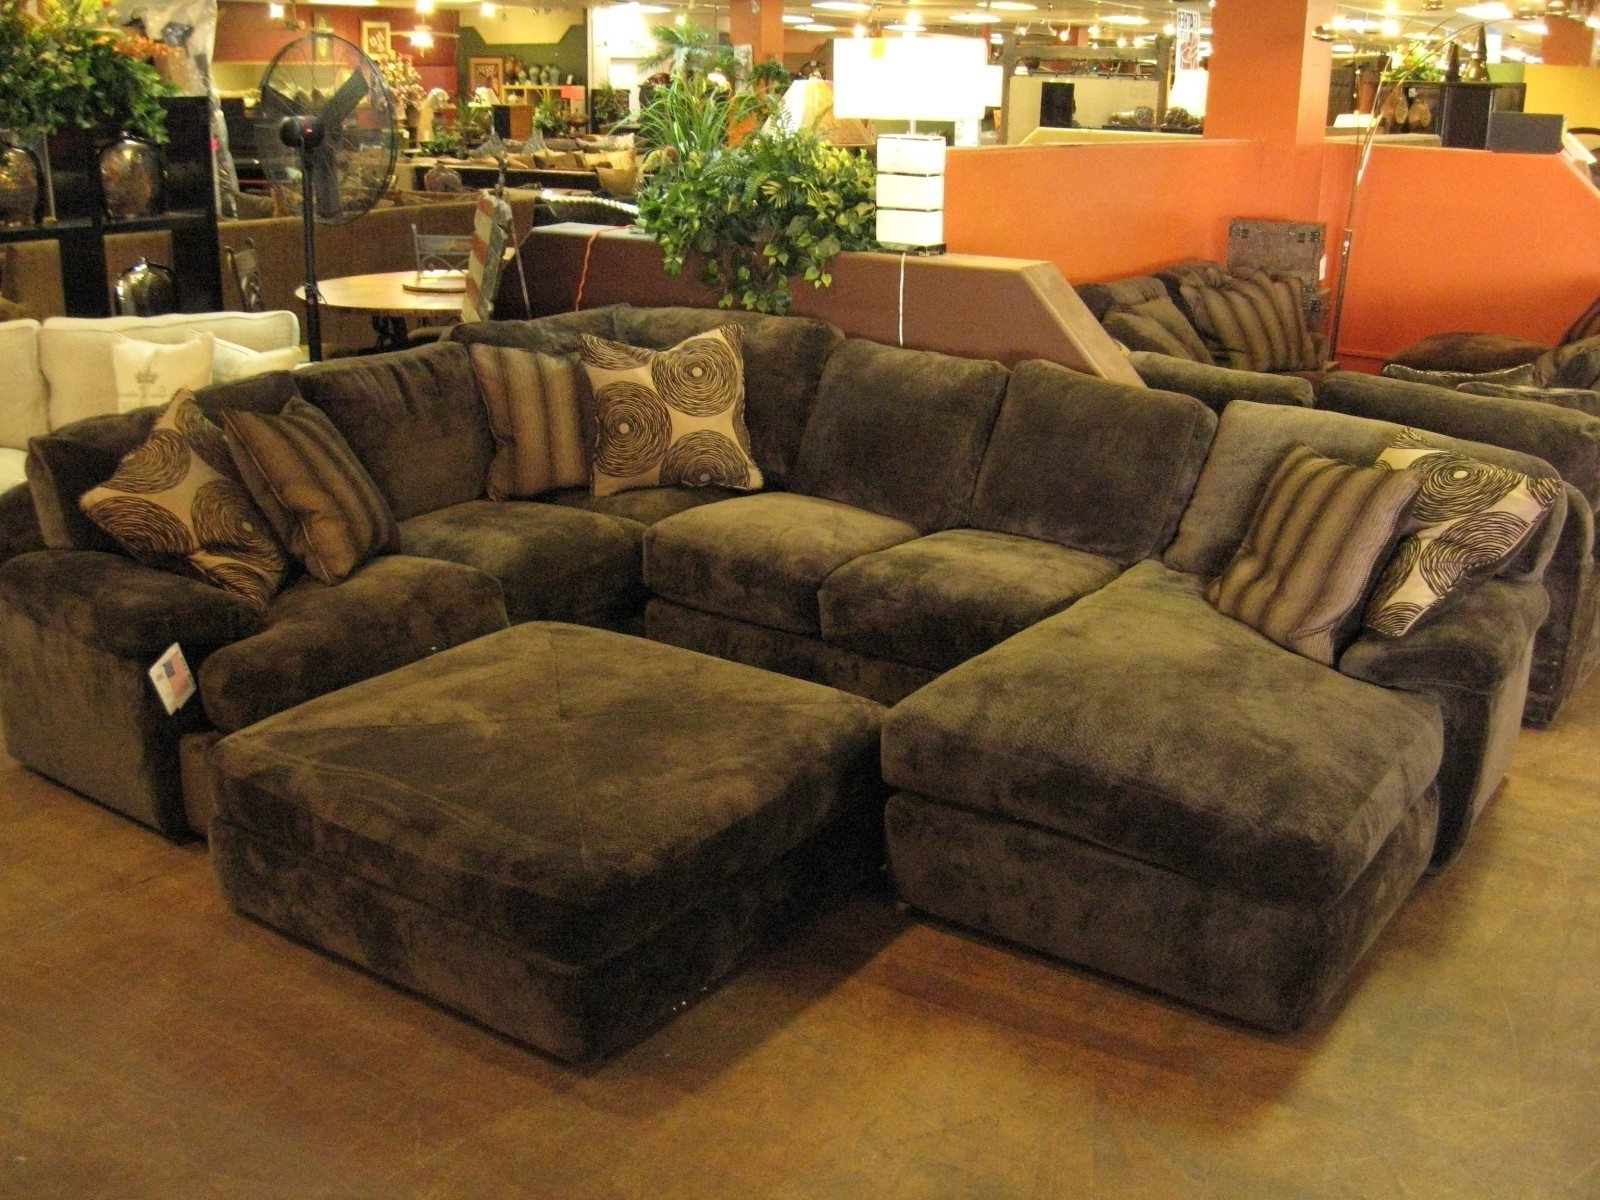 Sofa : Graceful Large Sectional Sofa With Chaise Leather Sofas With Fashionable Sectional Sofas With Chaise And Ottoman (View 3 of 20)